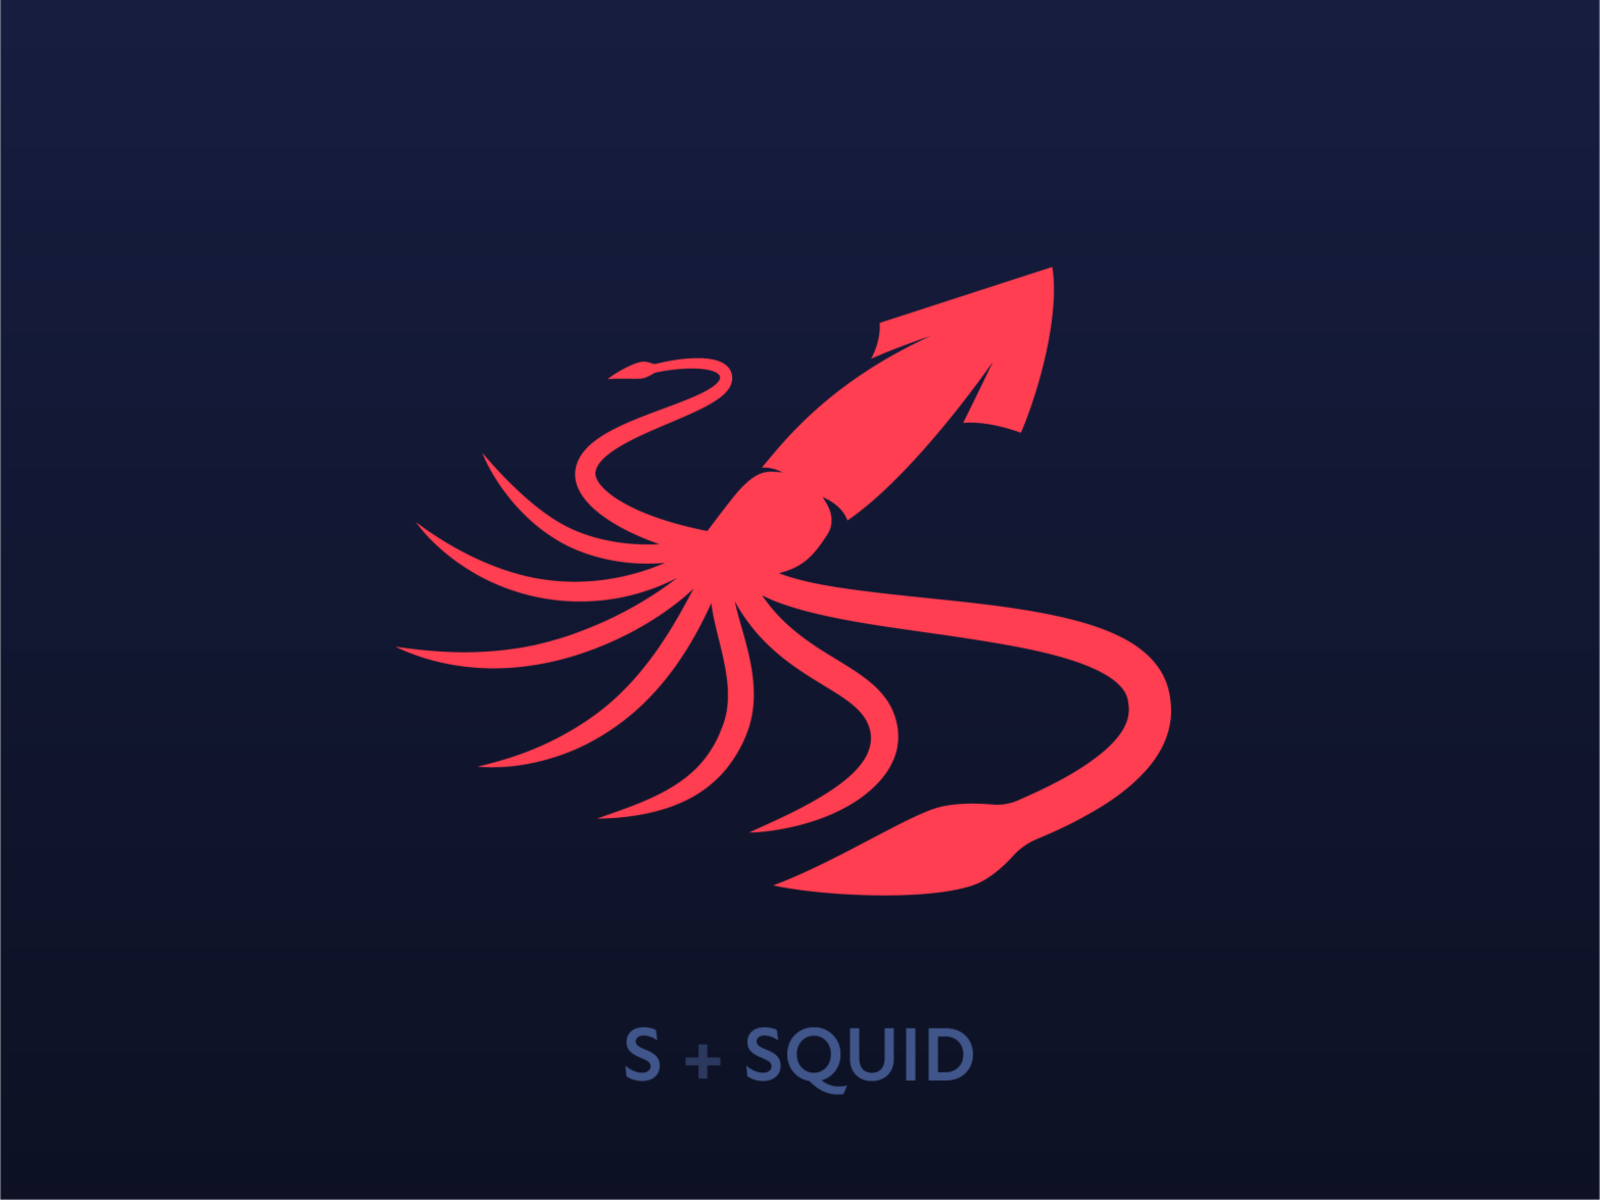 squid logo concept by robert nowland on dribbble squid logo concept by robert nowland on